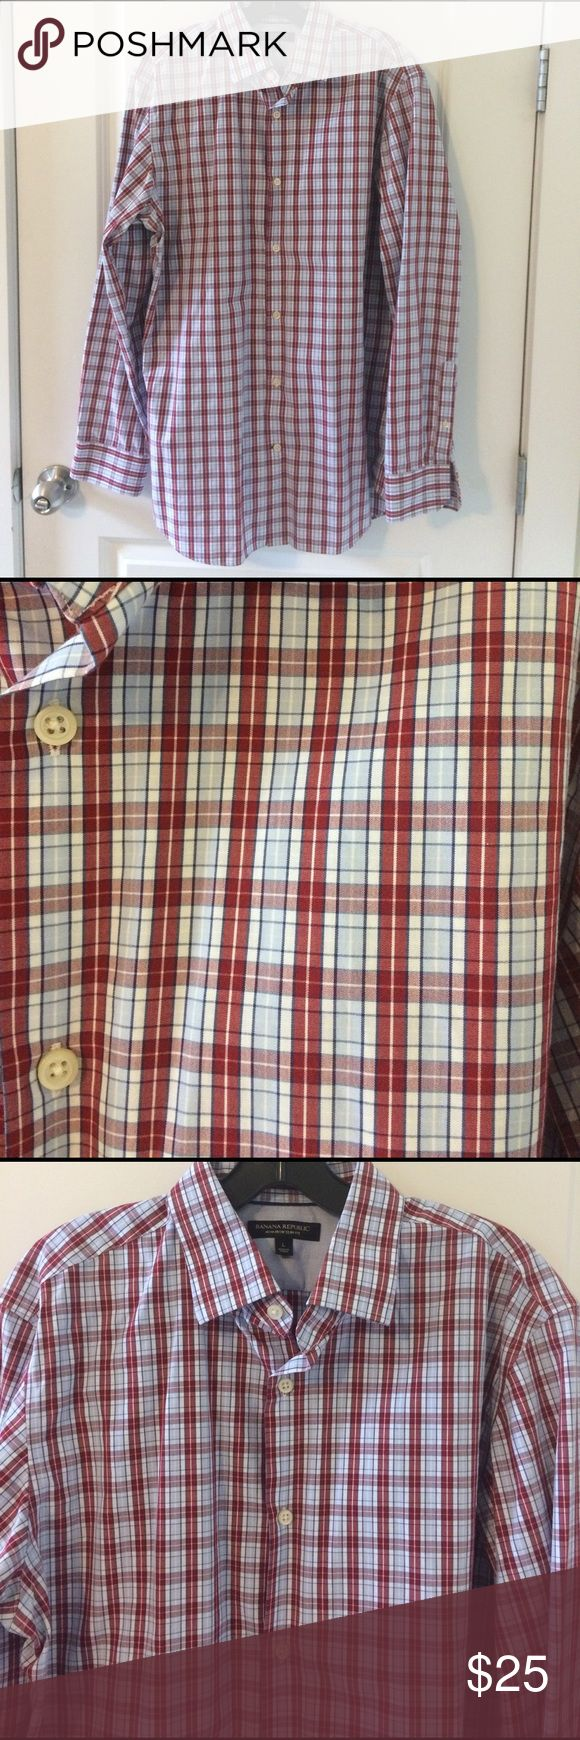 Banana Republic Non-Iron Slim Fit Dress Shirt Red, white, and blue plaid non-iron slim fit dress shirt. Size large. Banana Republic. Banana Republic Shirts Dress Shirts